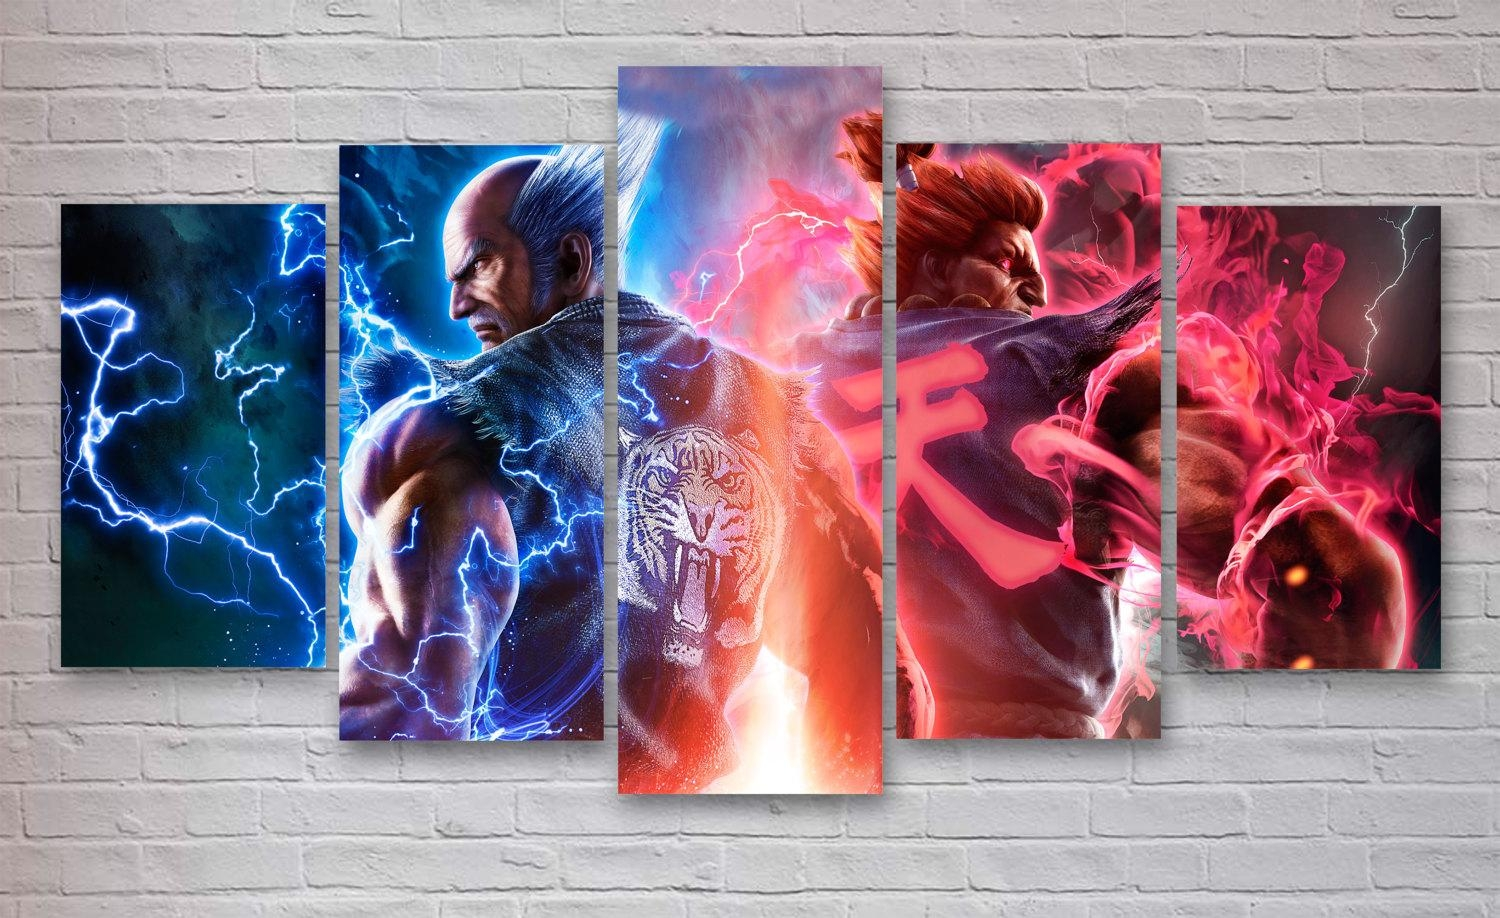 Tekken 7 Gaming 5 Panel / Piece Canvas Wall Art Office Intended For 7 Piece Canvas Wall Art (Image 14 of 22)